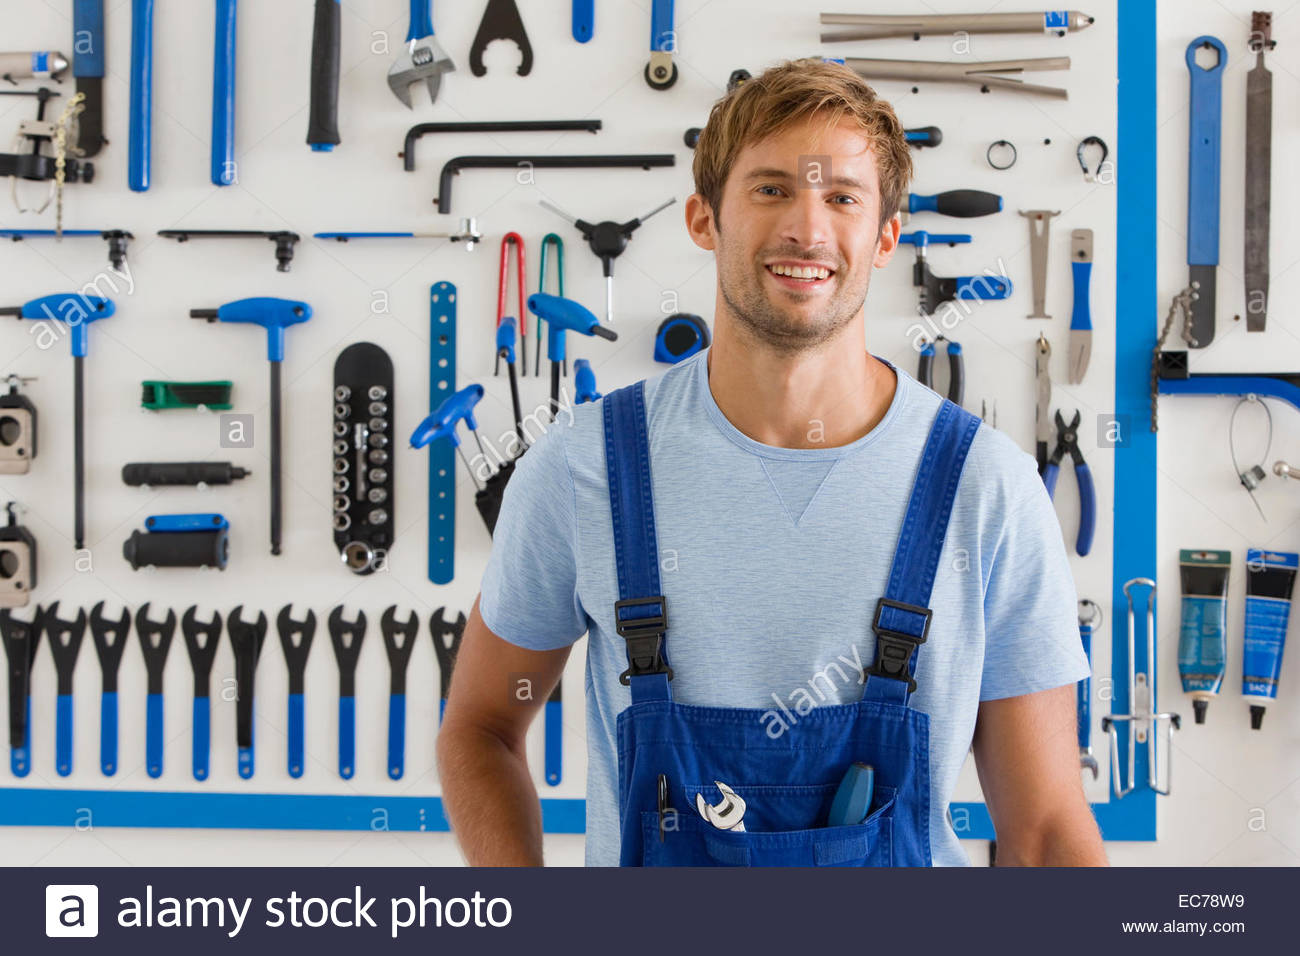 Cycle technician in workshop smiling at camera - Stock Image